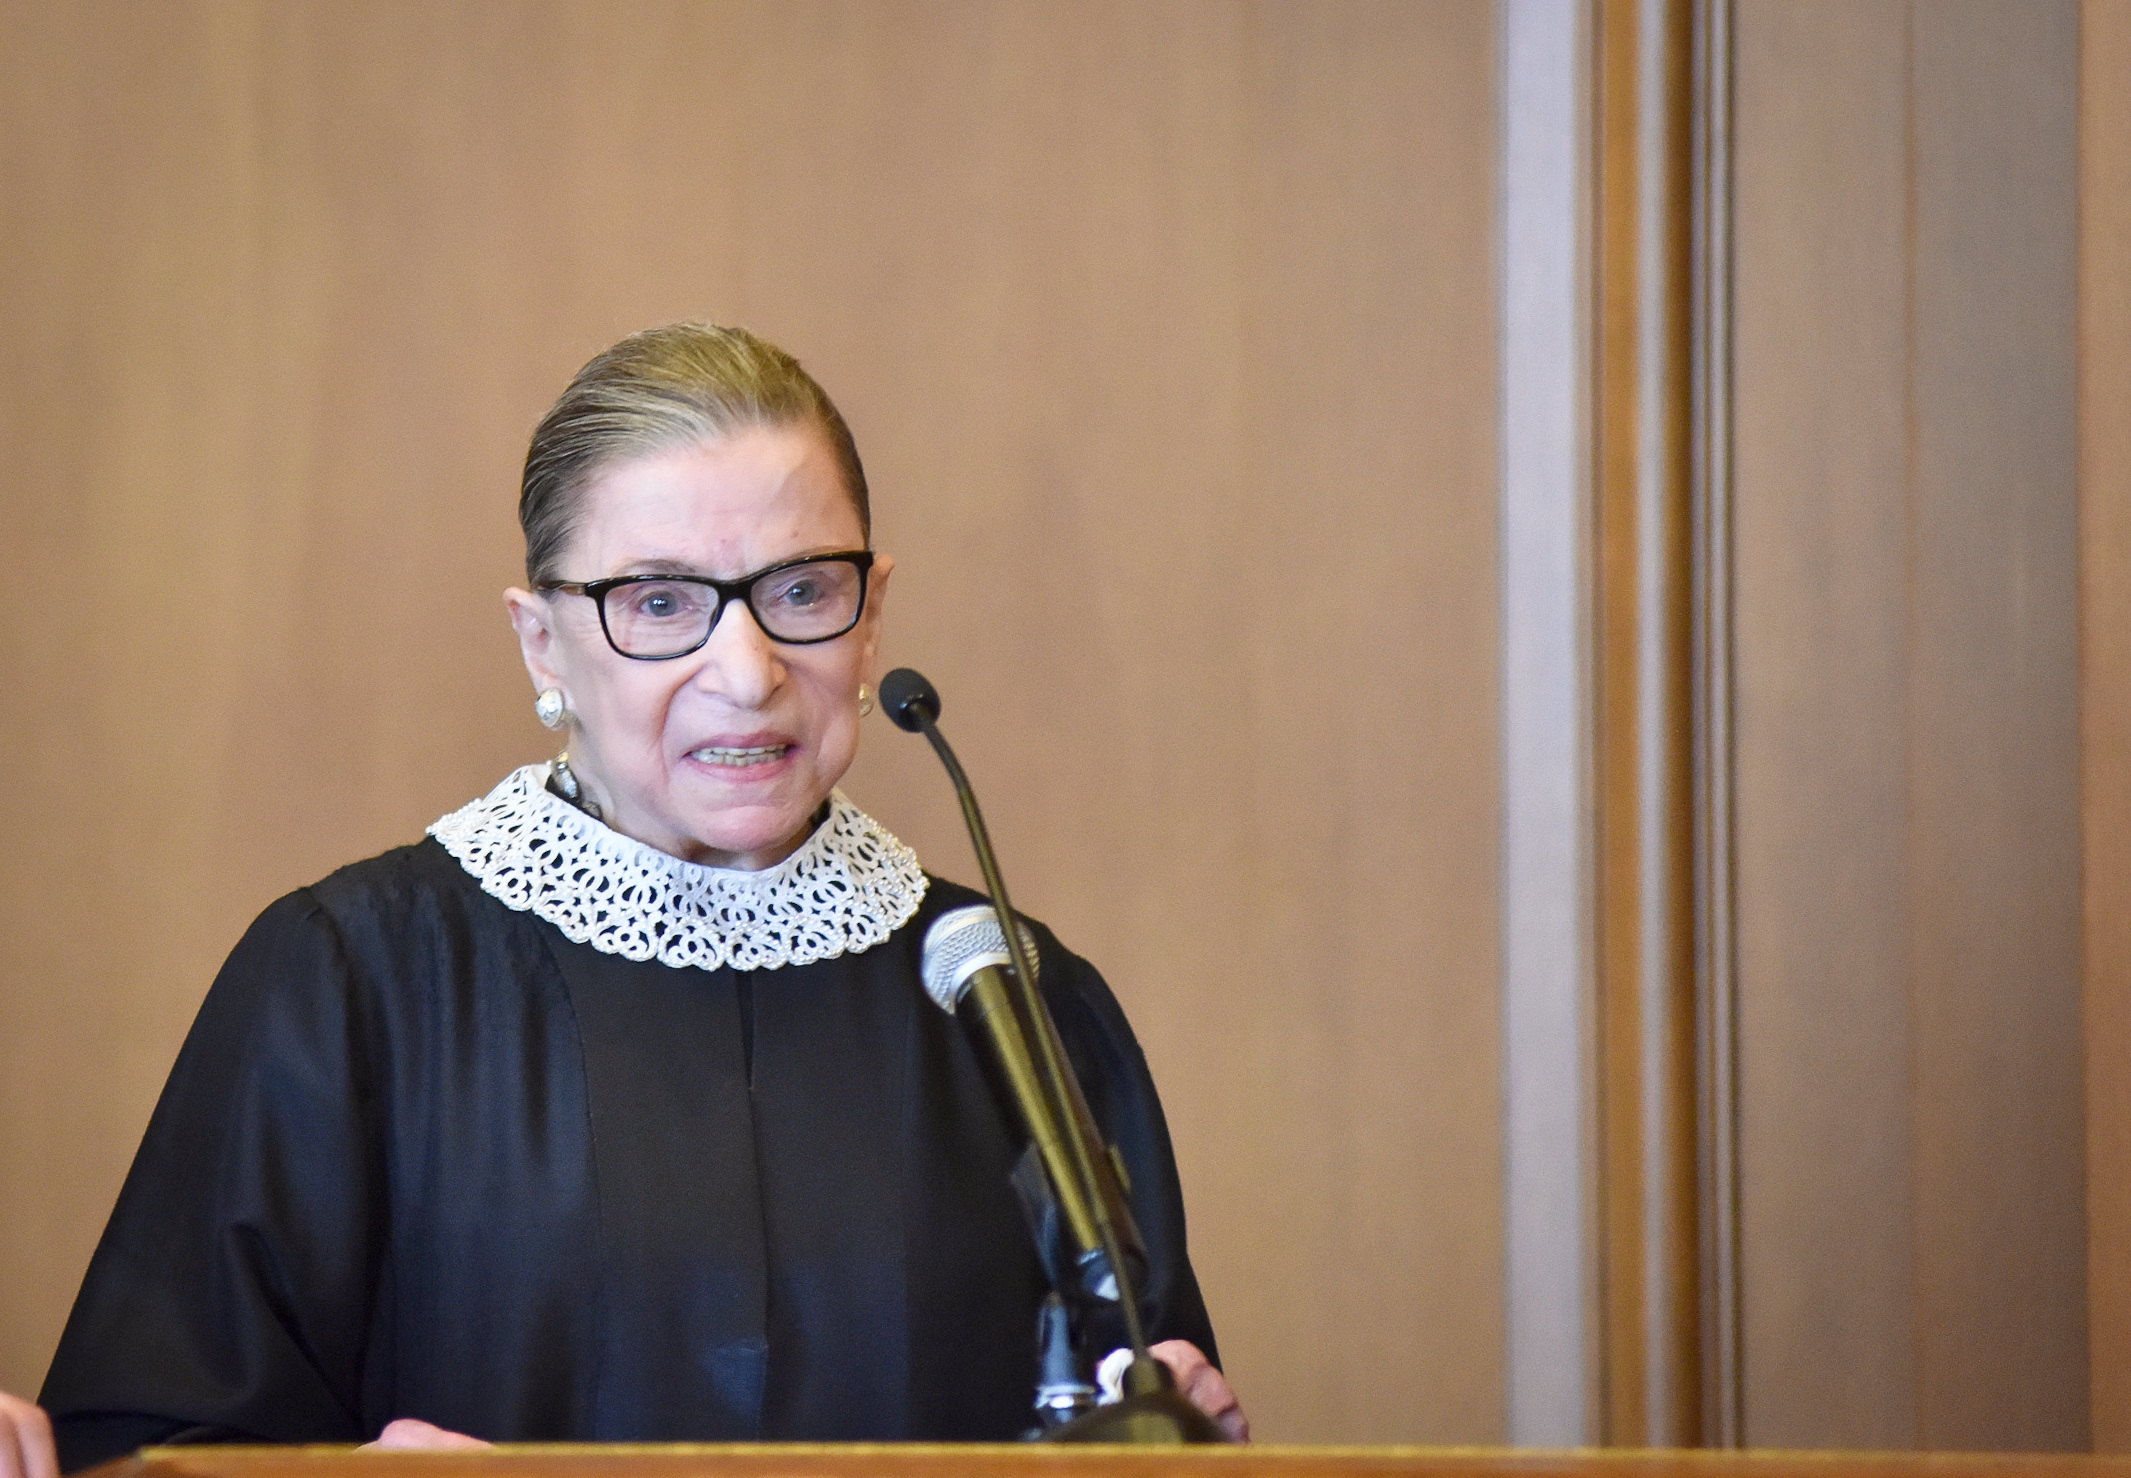 Image: Ruth Bader Ginsburg has pancreatic cancer and received radiation treatments; too bad Google and YouTube are censoring all the cancer cures that really work